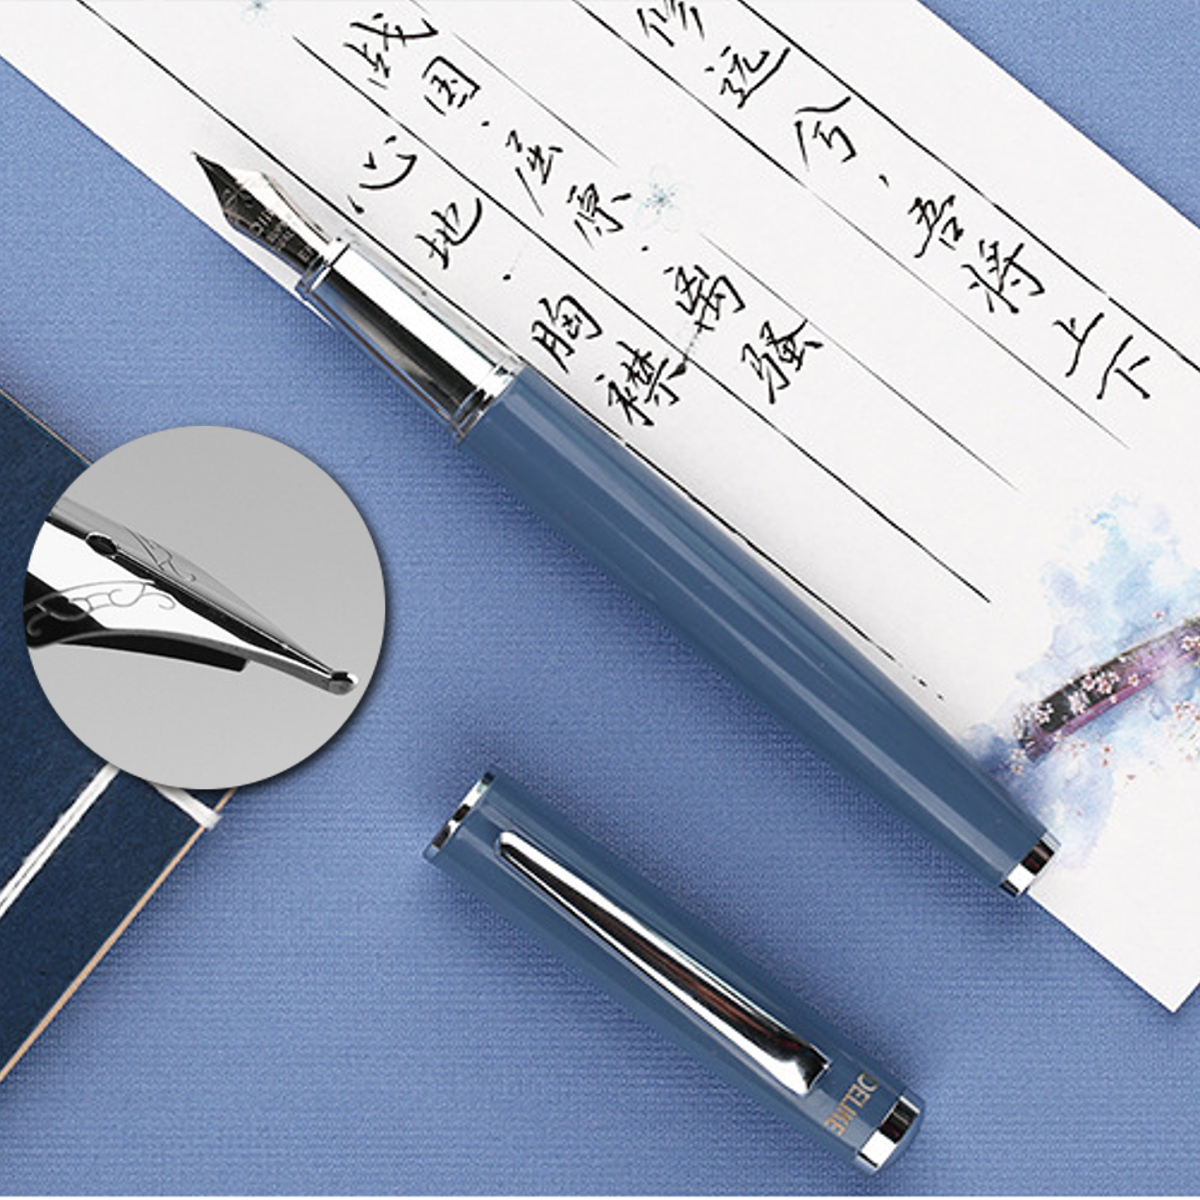 Delike Fountain Pen 0.38mm/0.5mm EF/F Nib Calligraphy Writing Signing Ink Pens Gifts for Students Friends Families